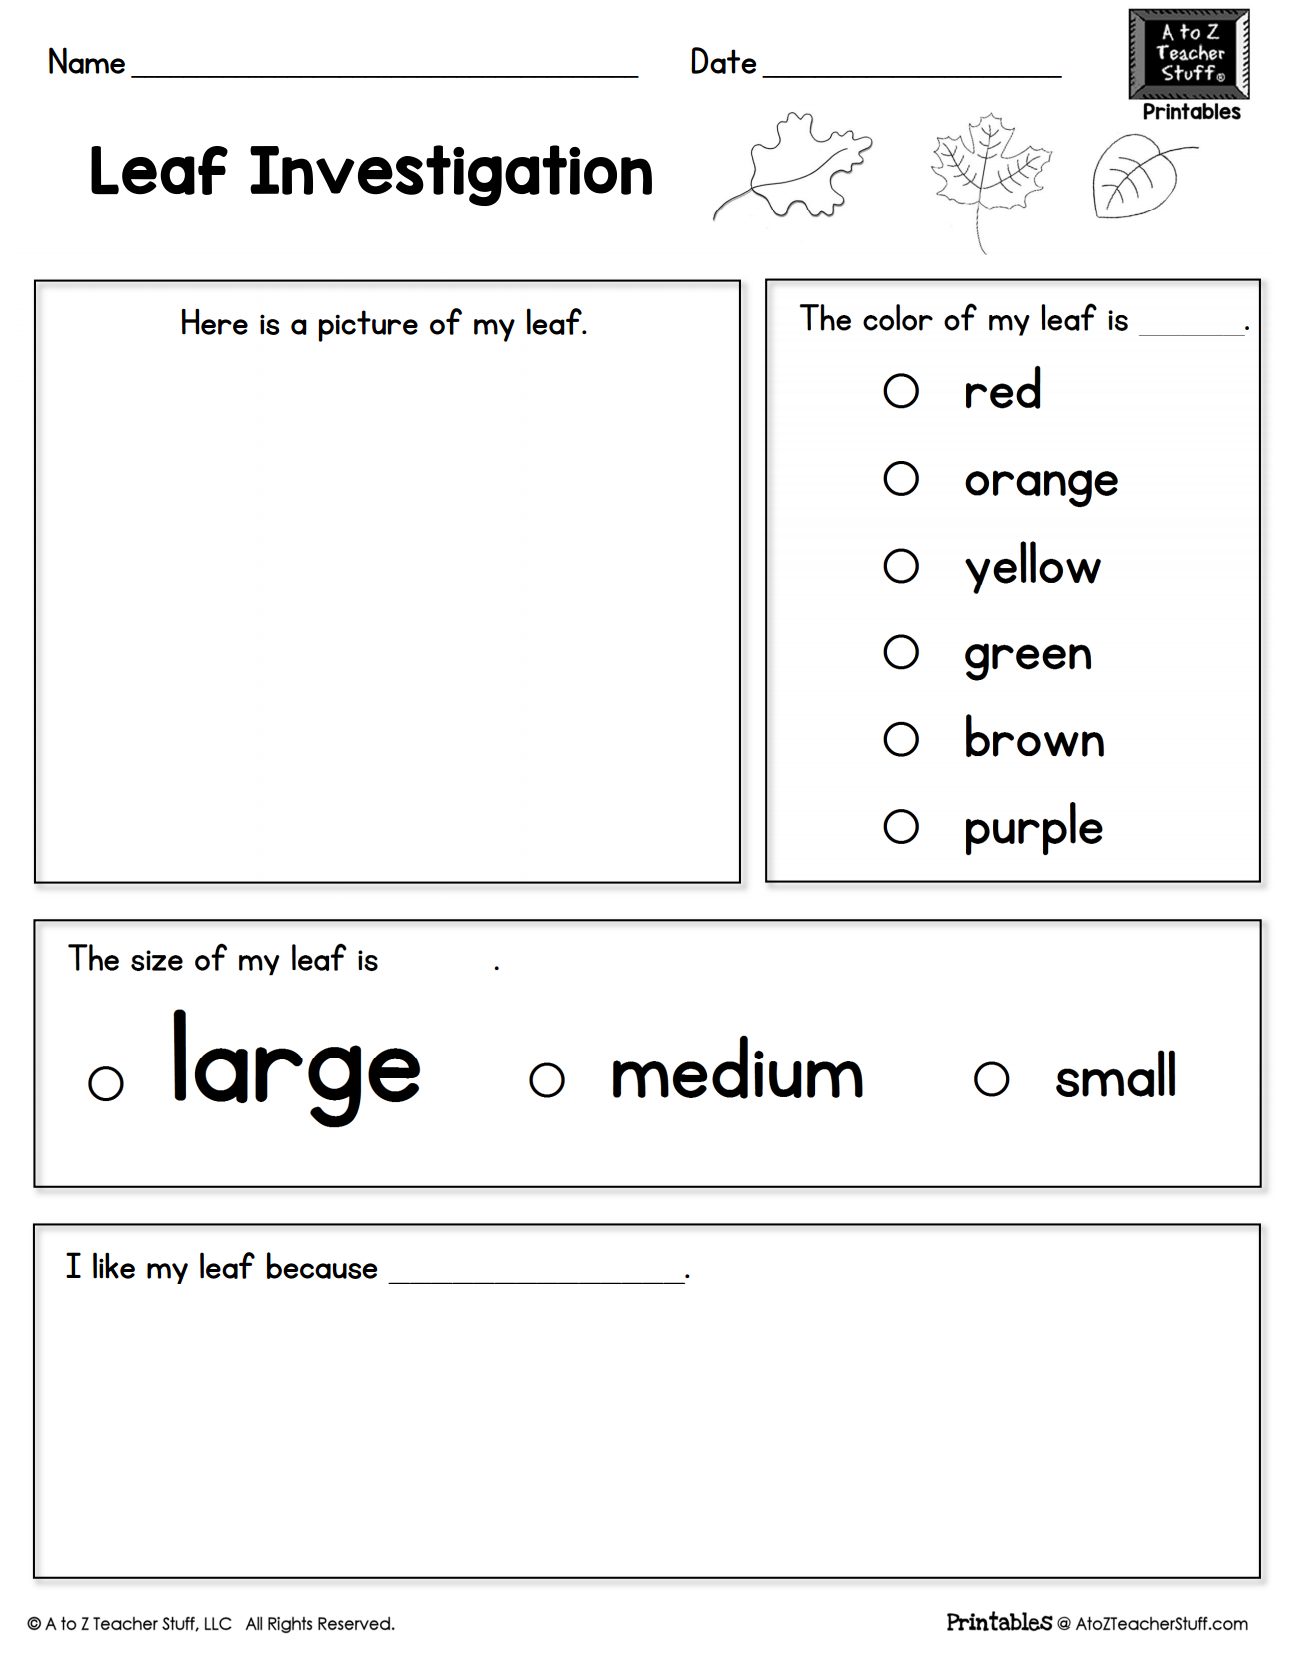 Area and perimeter worksheets printables a to z teacher stuff leaf investigation printable worksheet robcynllc Choice Image